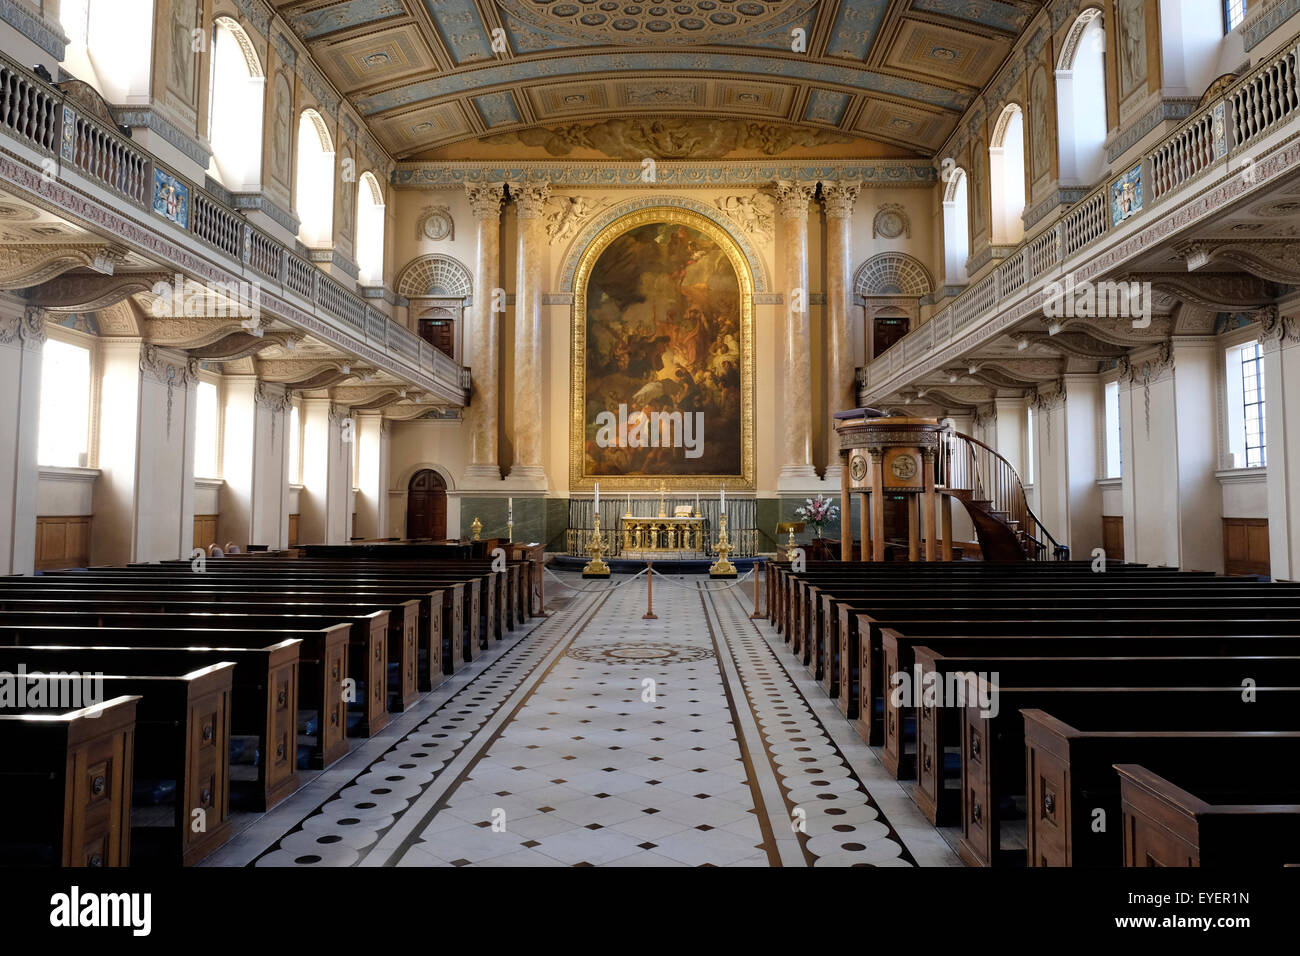 A wide view of the interior of the chapell at the old royal naval college - Stock Image